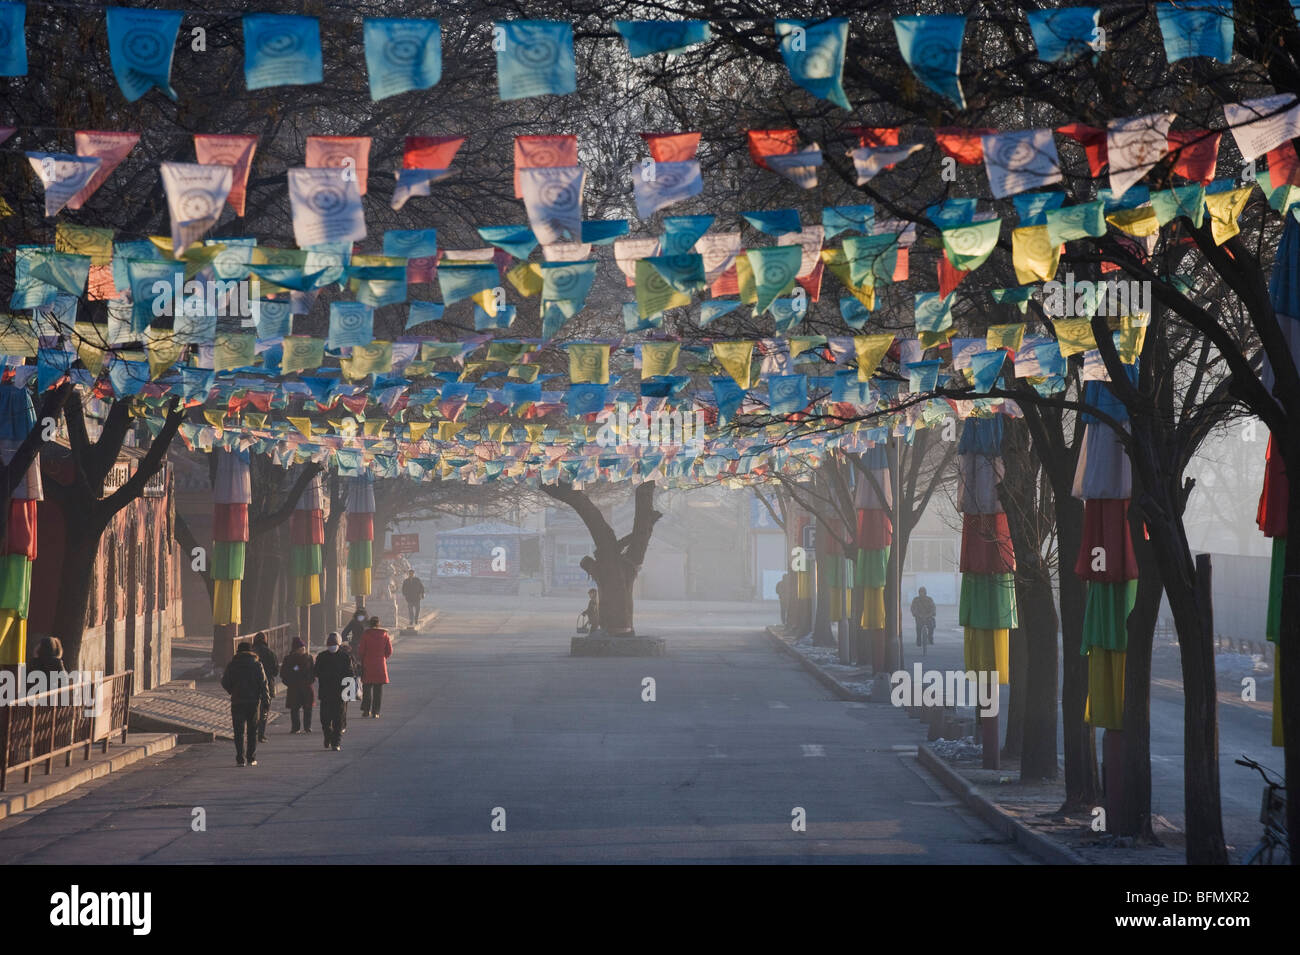 China, Hebei Province, Chengde, Tibetan prayer flags lining a street - Stock Image